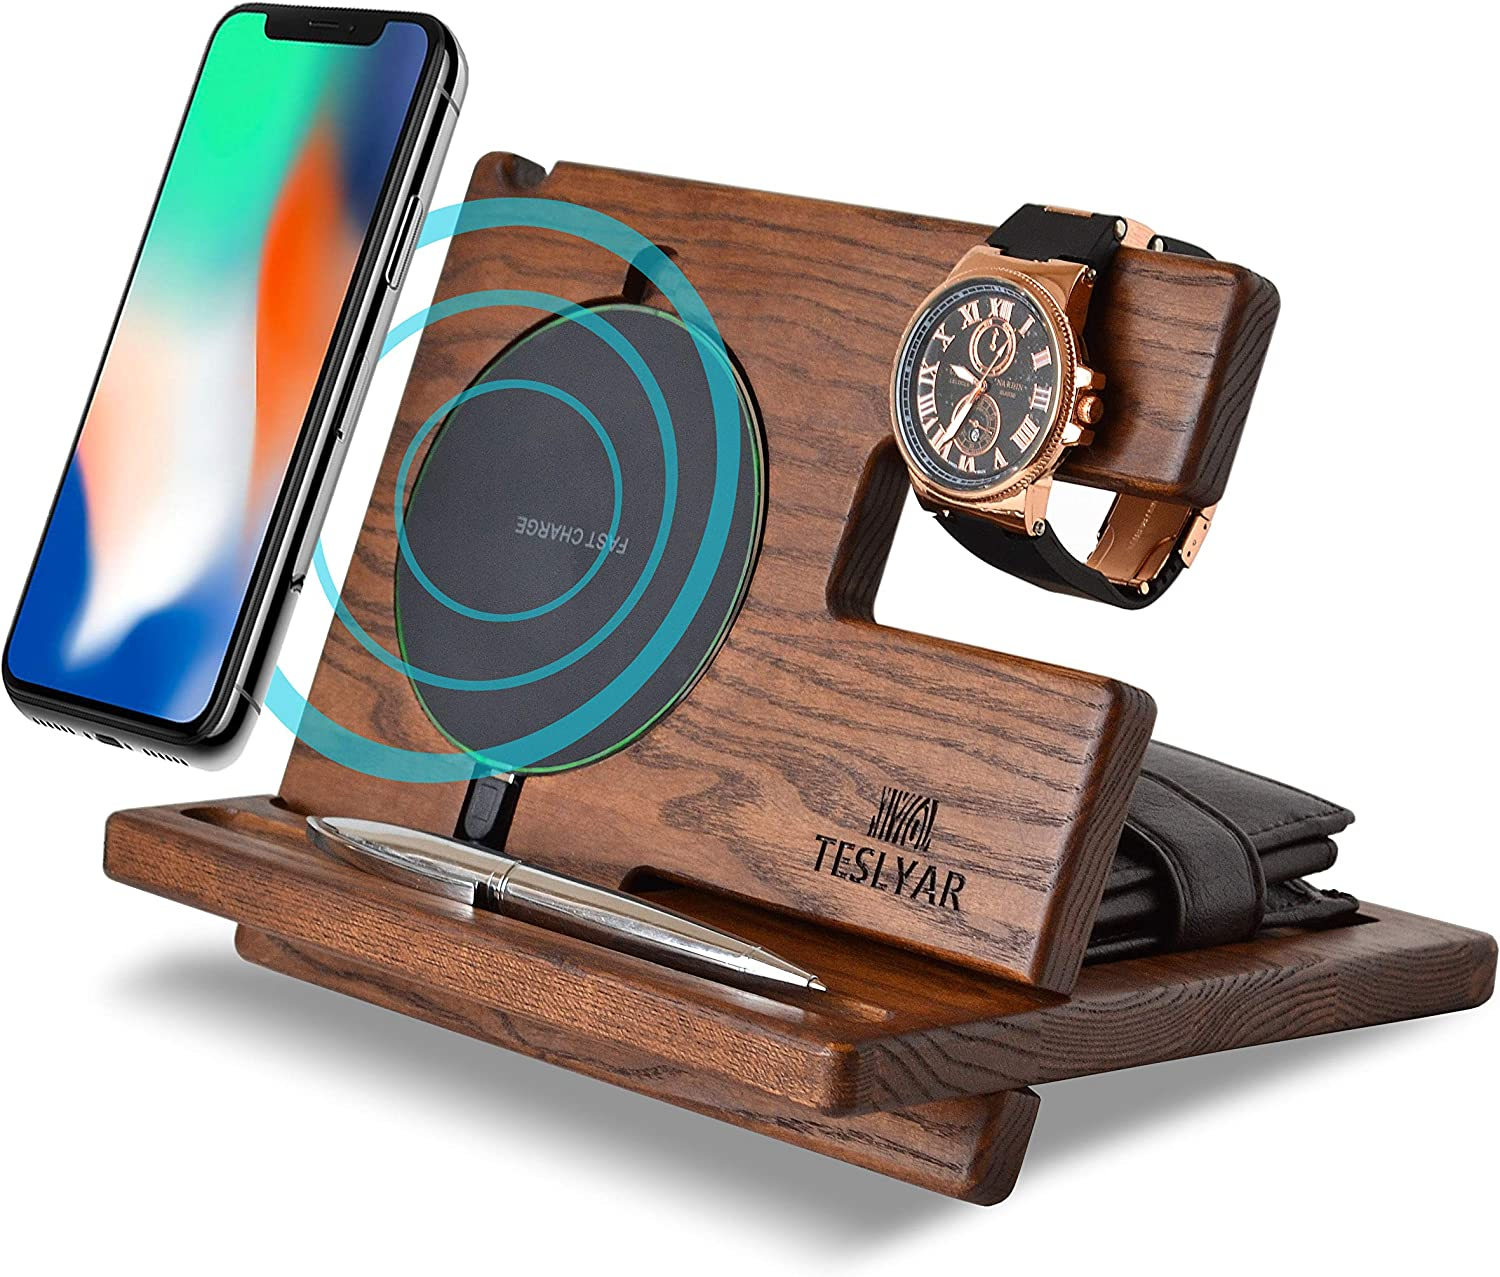 Wood Phone Docking Station Ash Key Holder Wallet Stand Watch Organizer Men Gift Husband Wireless Charging Pad Slim Birthday Nightstand Purse Tablet Compatible with iPhone Samsung Plus All Qi Devices